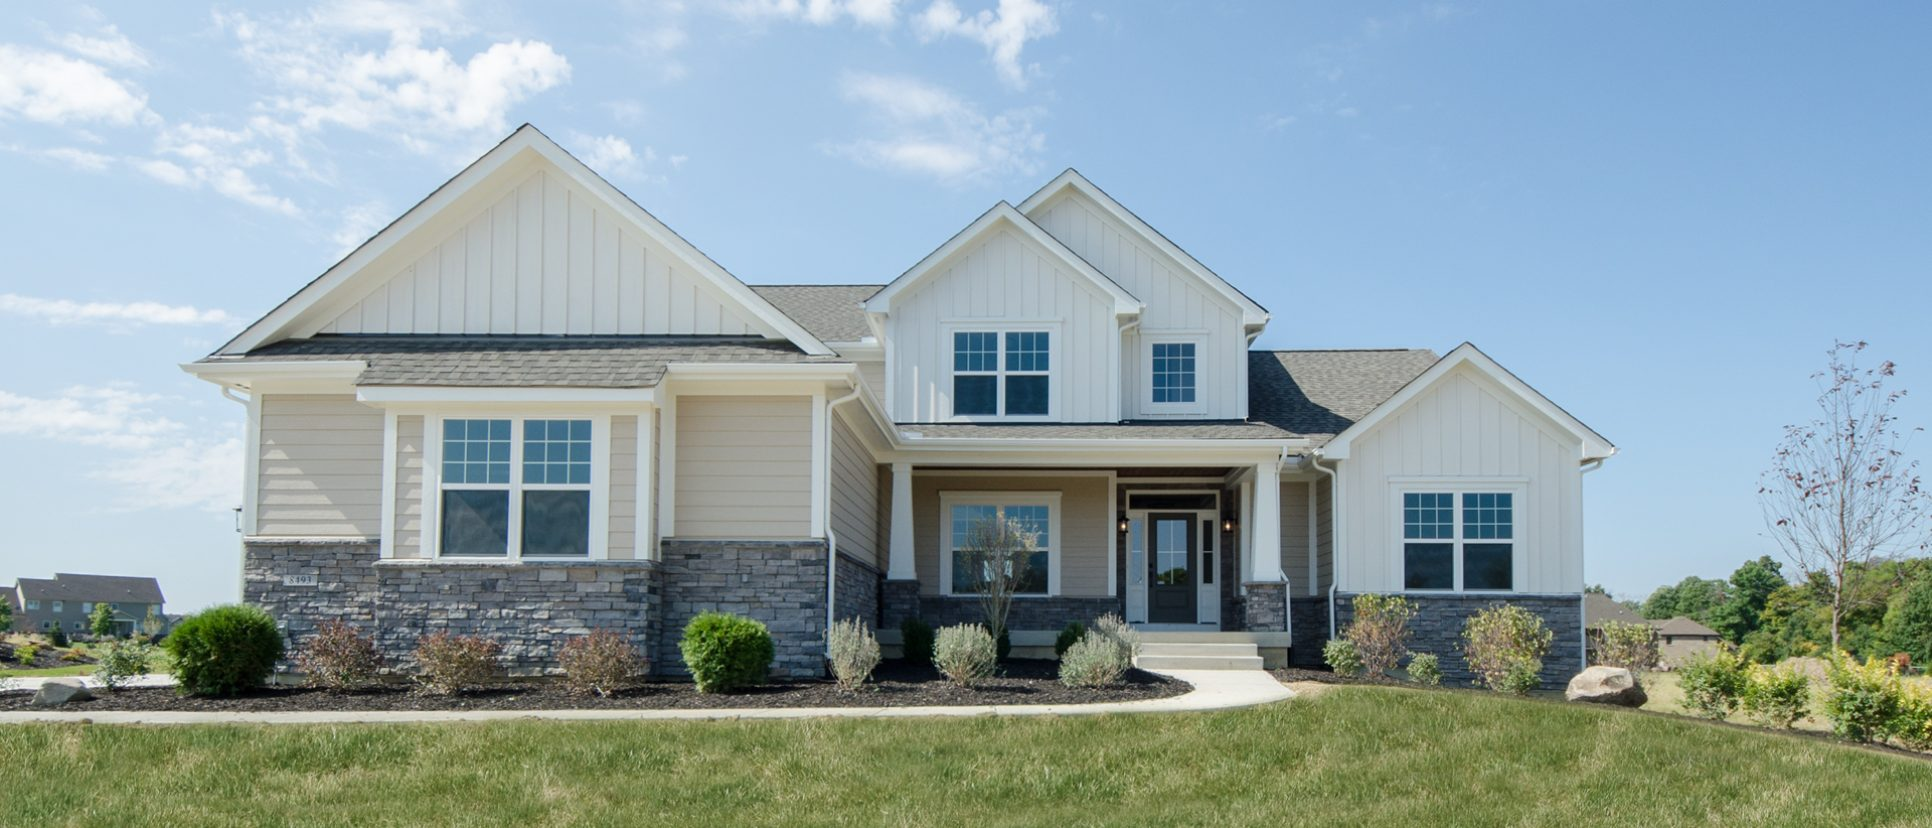 Custom exterior of The Triple Crown. A custom, move-in ready home by Design Homes and Development.